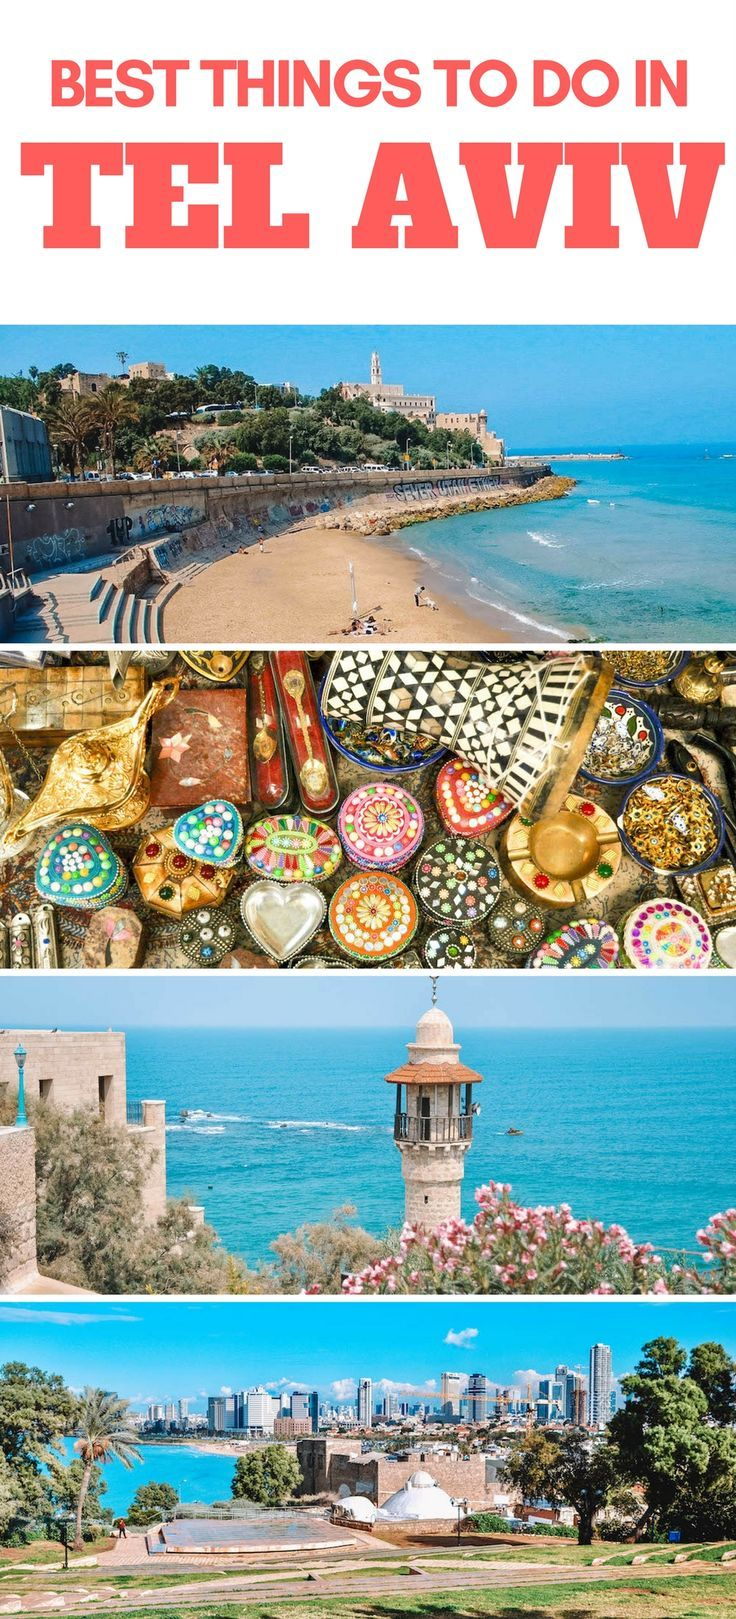 Find out how to explore Tel Aviv like a local! The best things to do, places to see, where to eat and all the insider tips from a local!